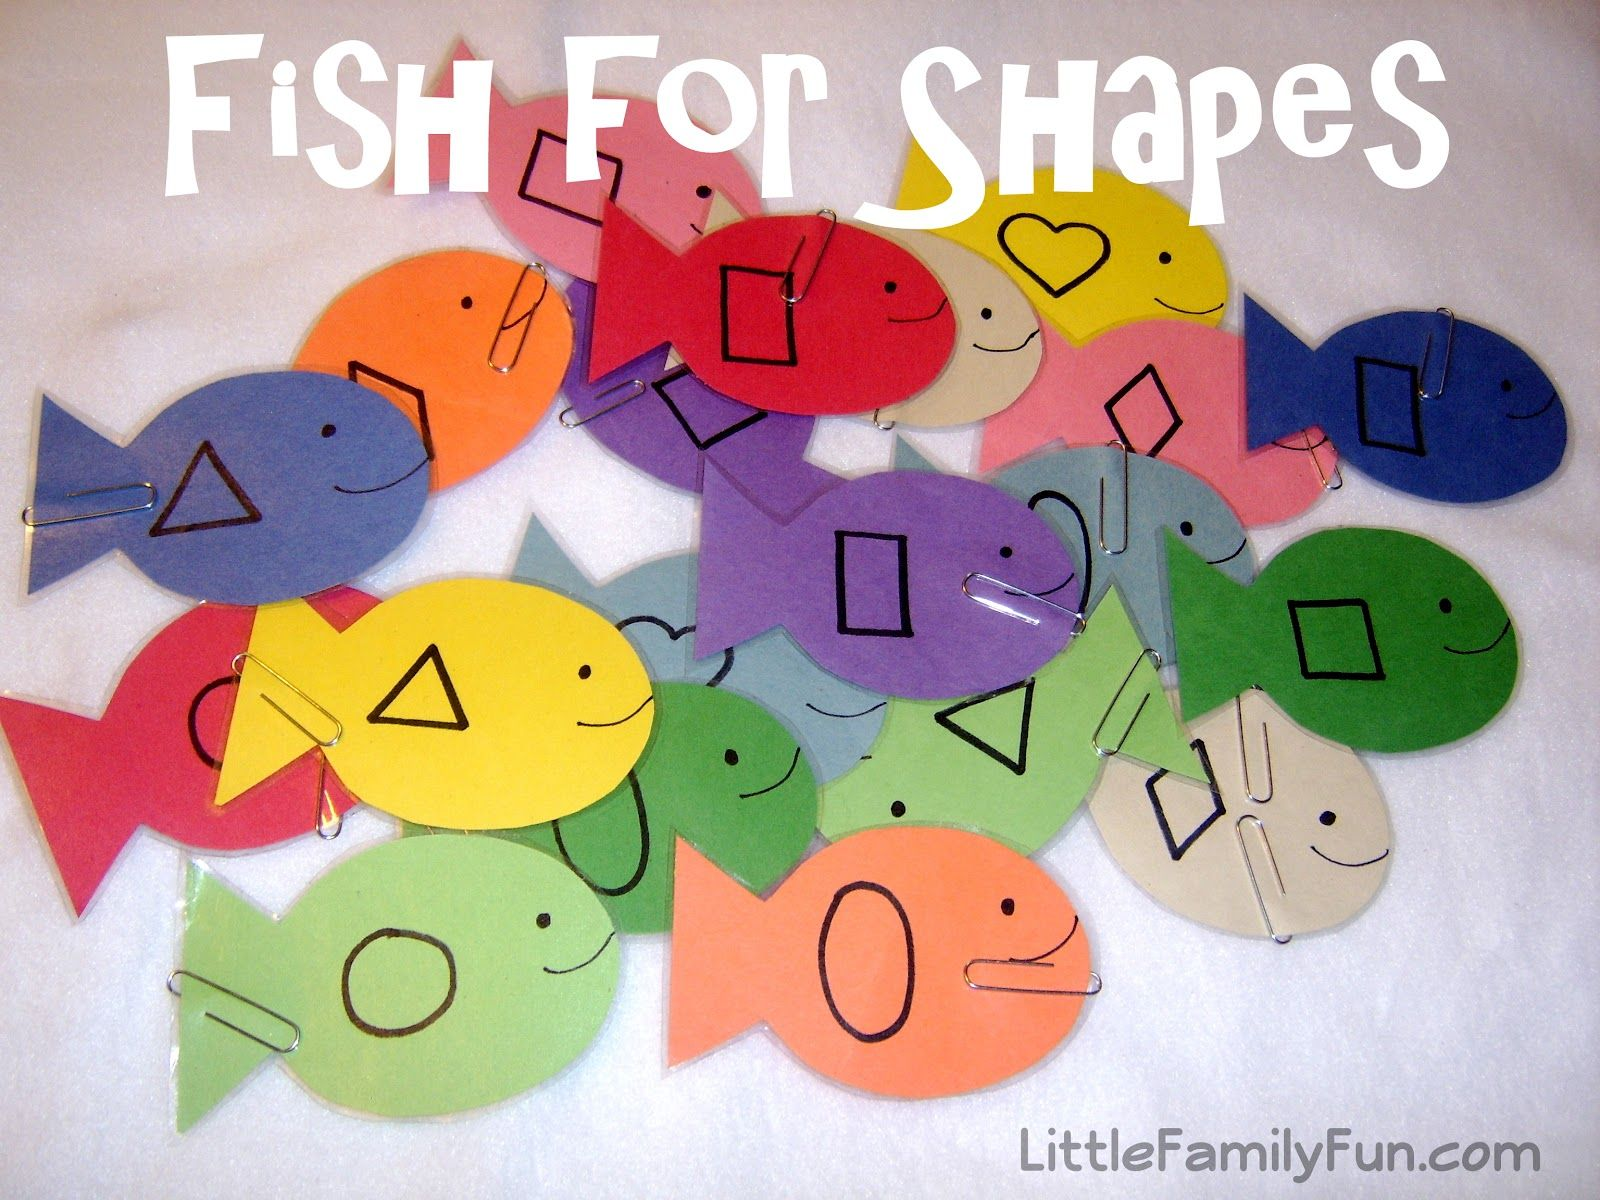 Letter s arts and crafts for preschoolers - Summer Crafts For Preschoolers Little Family Fun Fish For Shapes